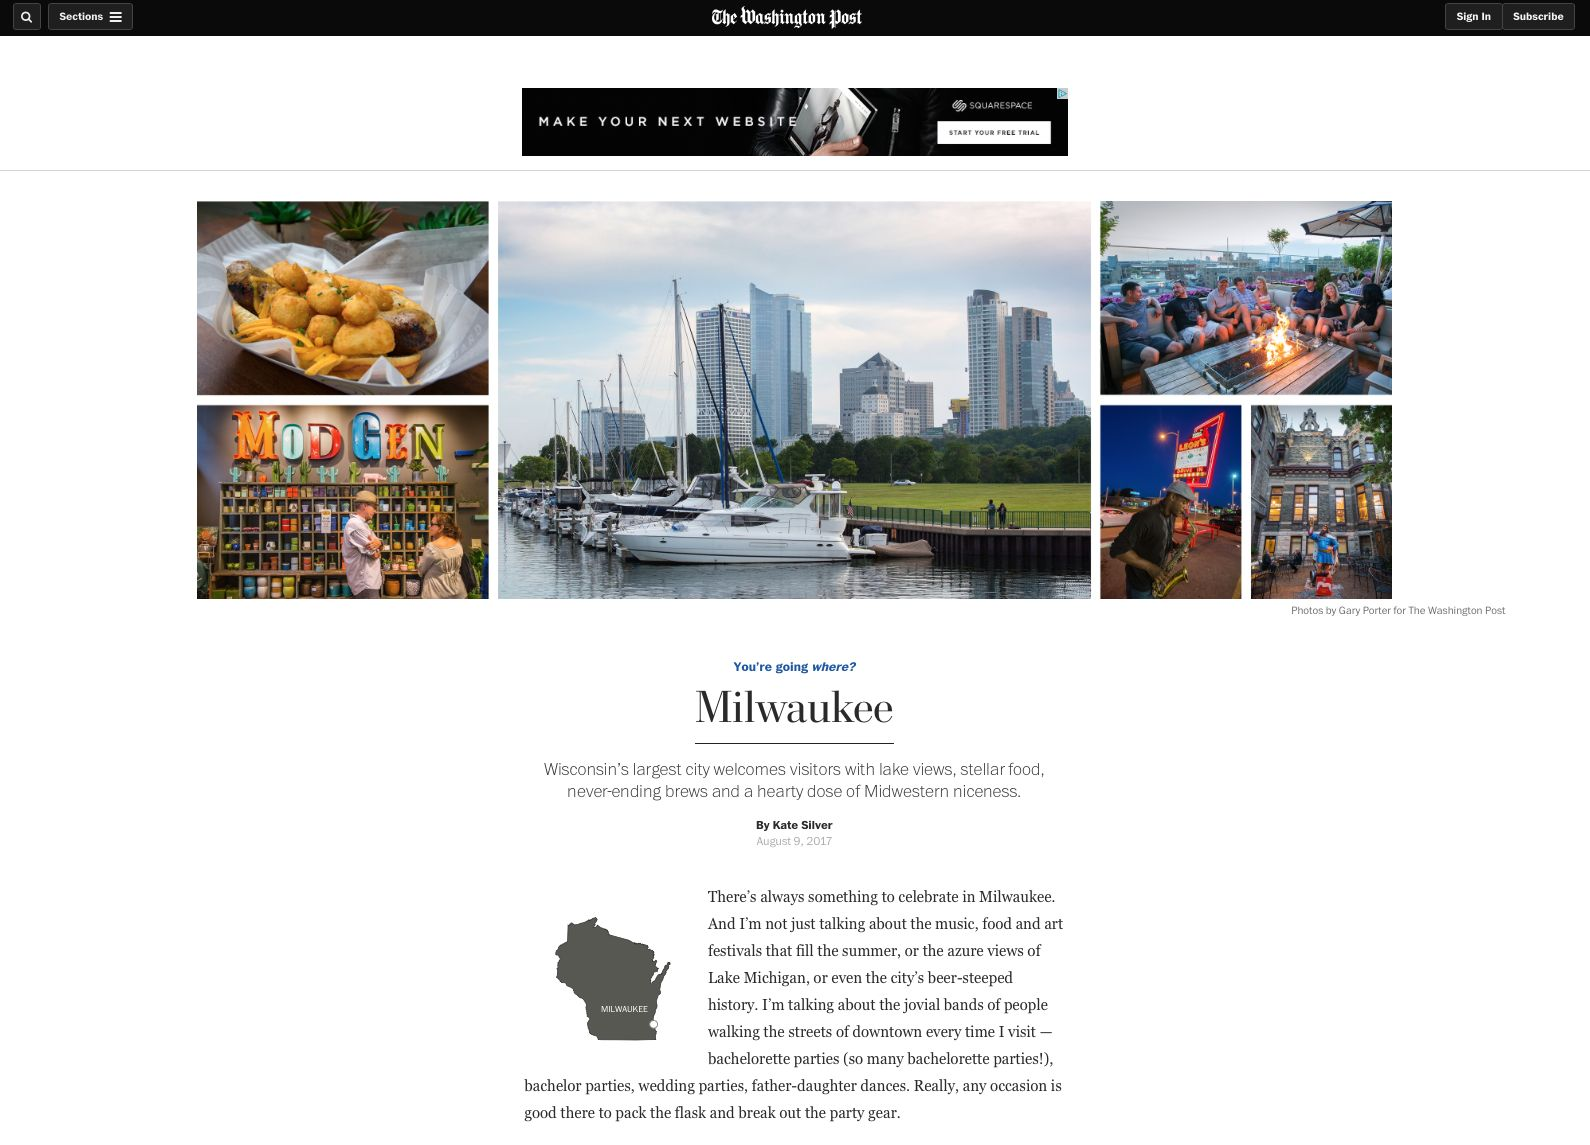 Milwaukee Featured in The Washington Post.